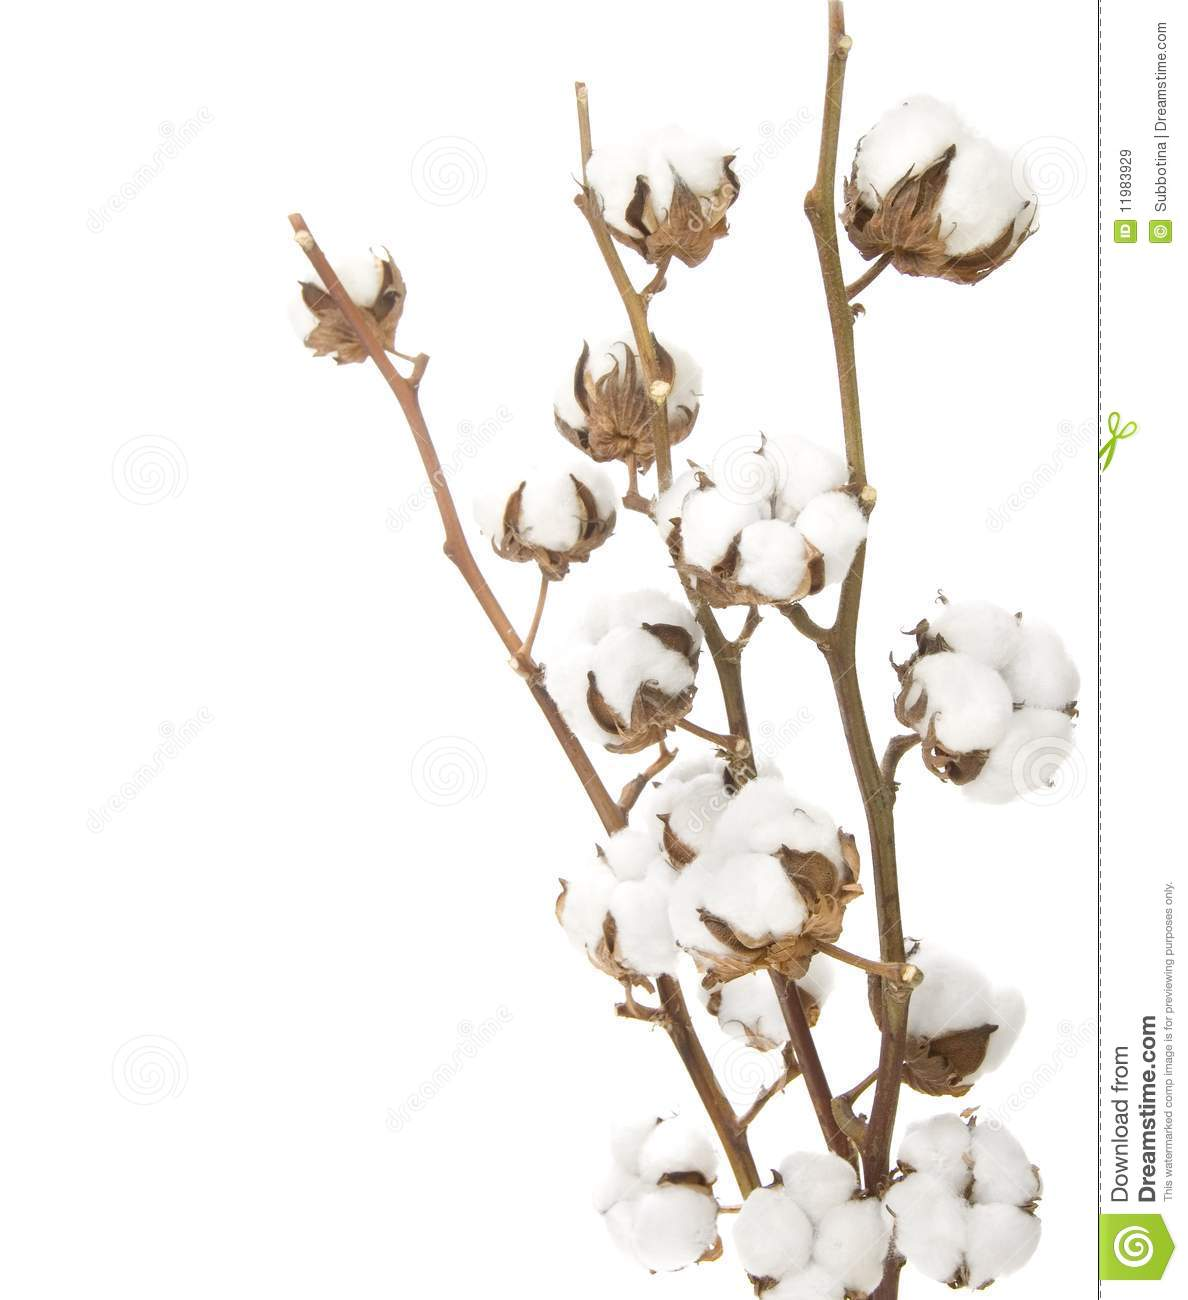 how to grow cotton from seeds on cotton balls